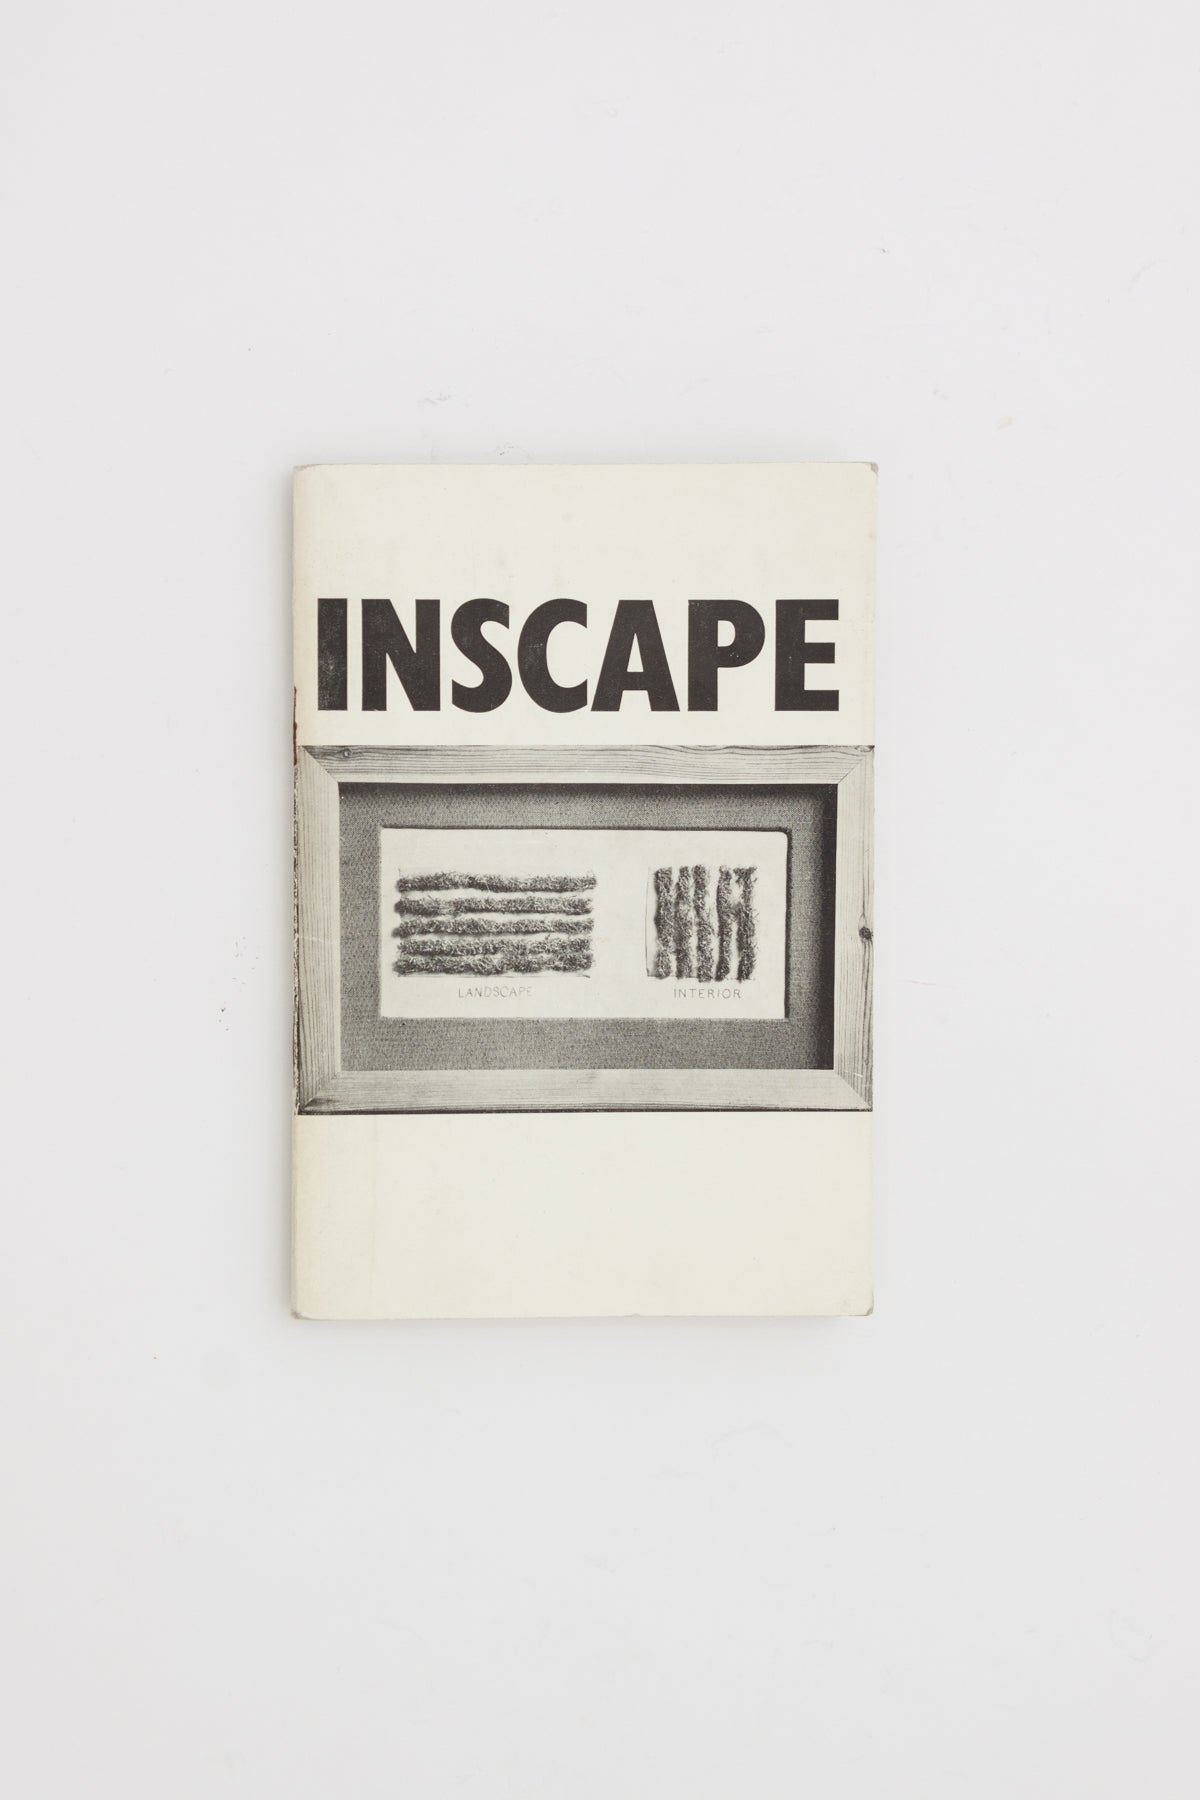 Inscape - Paul Overy